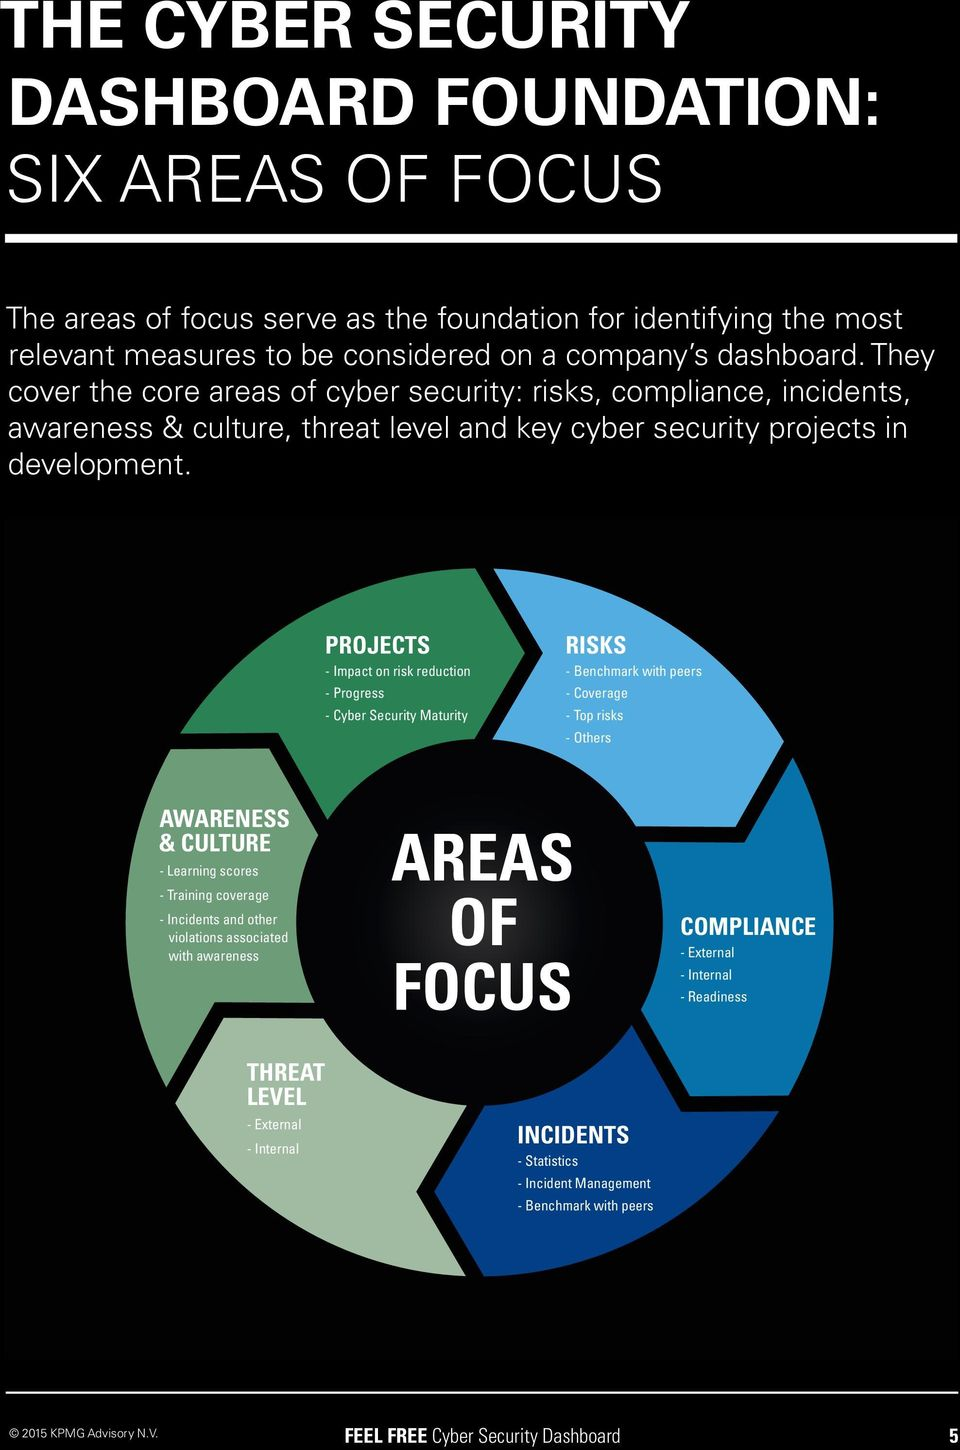 PROJECTS - Impact on risk reduction - Progress - Cyber Security Maturity RISKS - Benchmark with peers - Coverage - Top risks - Others AWARENESS & CULTURE - Learning scores - Training coverage -